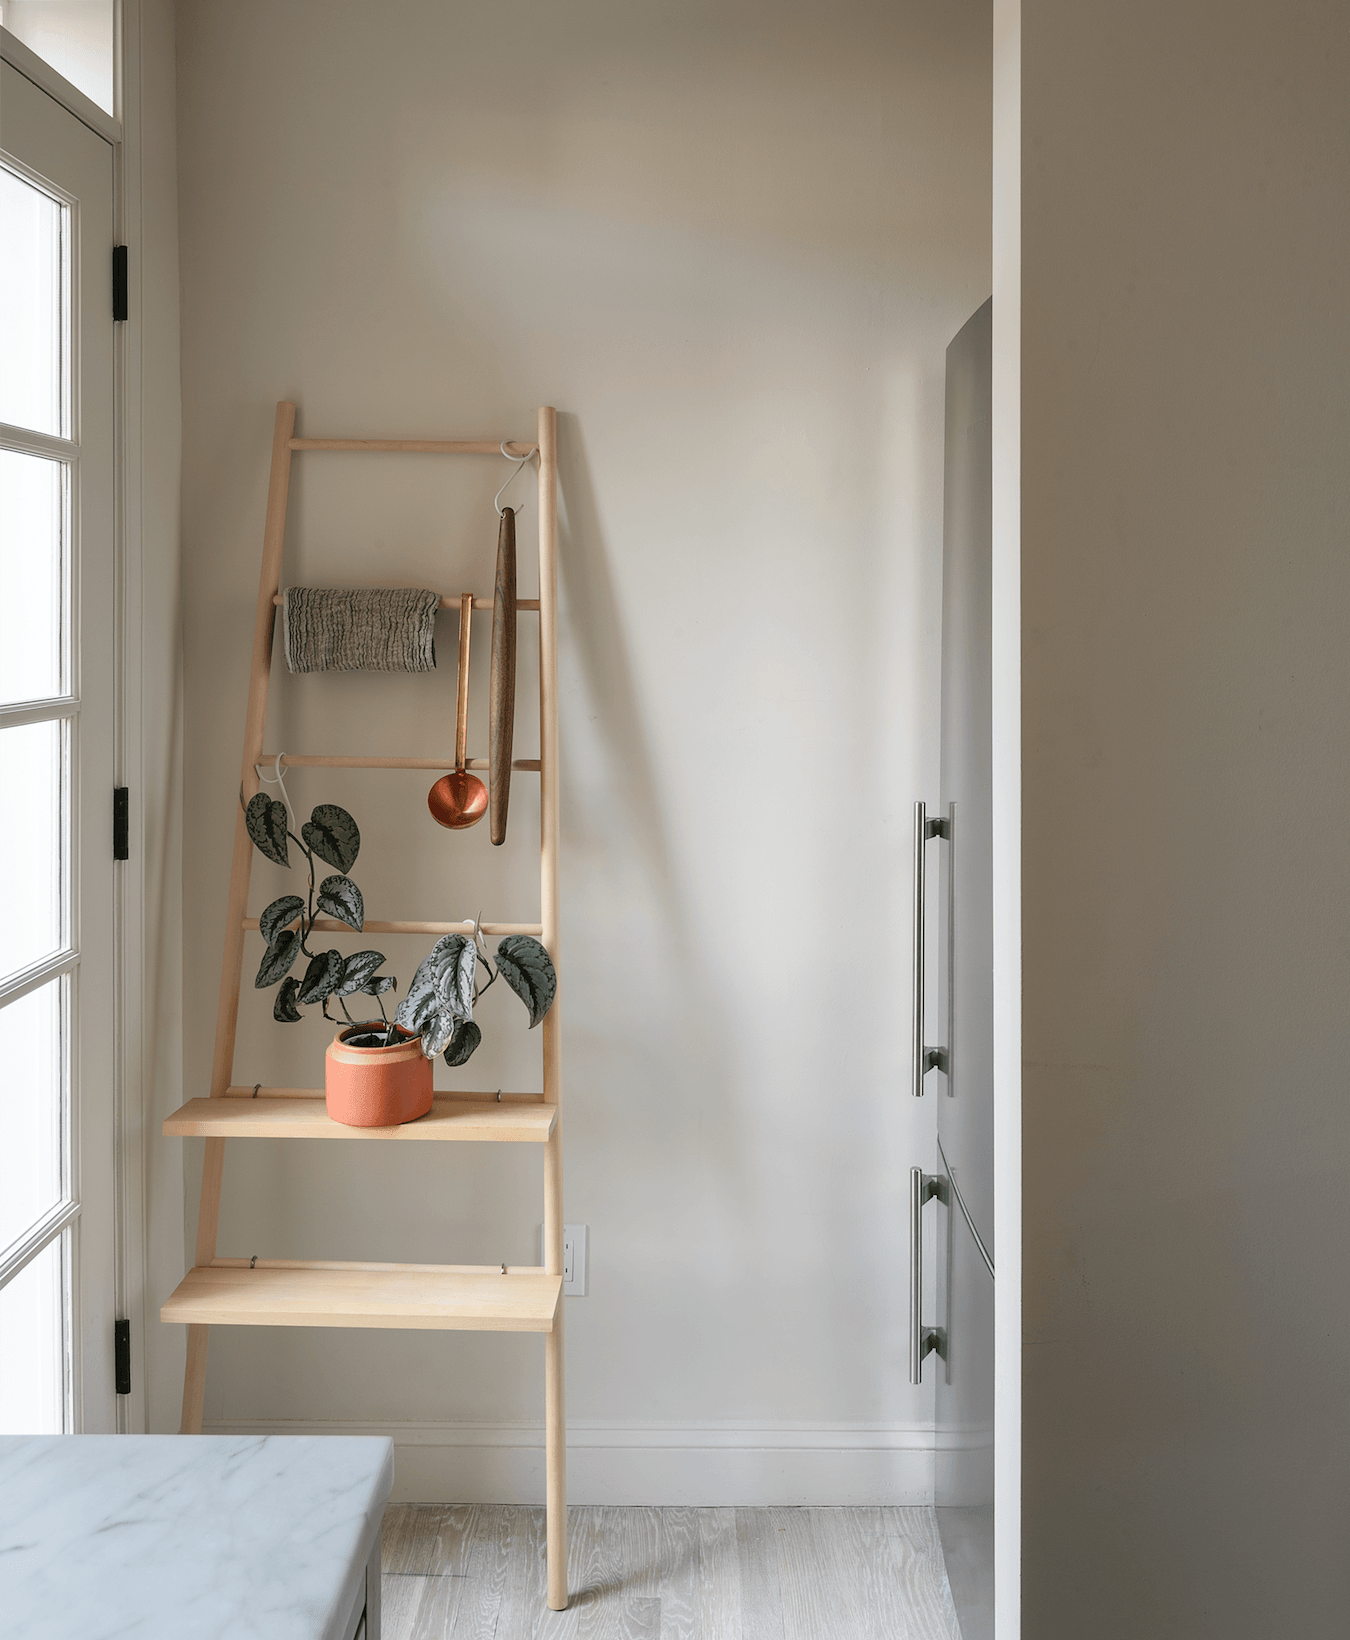 Studio Oink extended the wall to create a nook for the refrigerator, a Liebherr CS00.The owner added a Verso Design Tikas Ladder in birch, with twoTikas Shelves for extra storage.